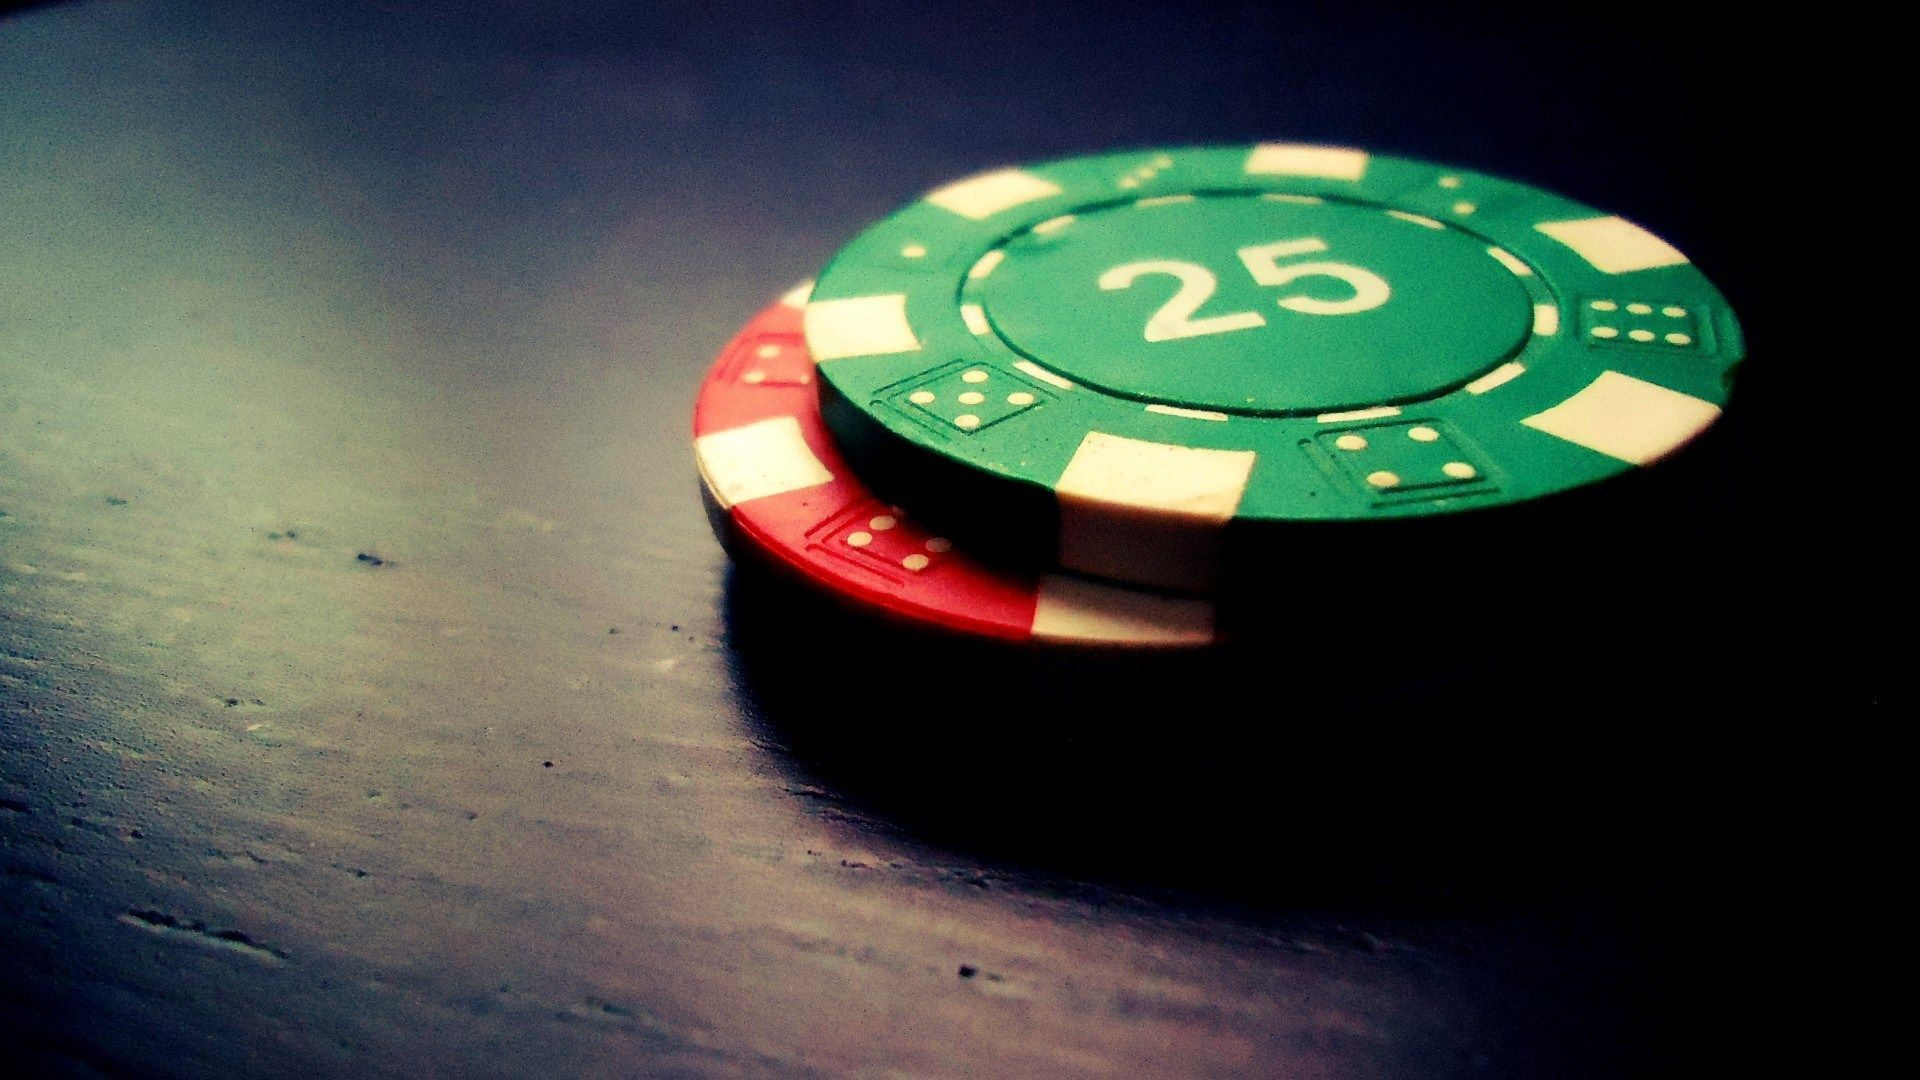 Reasons for Growing Popularity of Online Poker Outlets